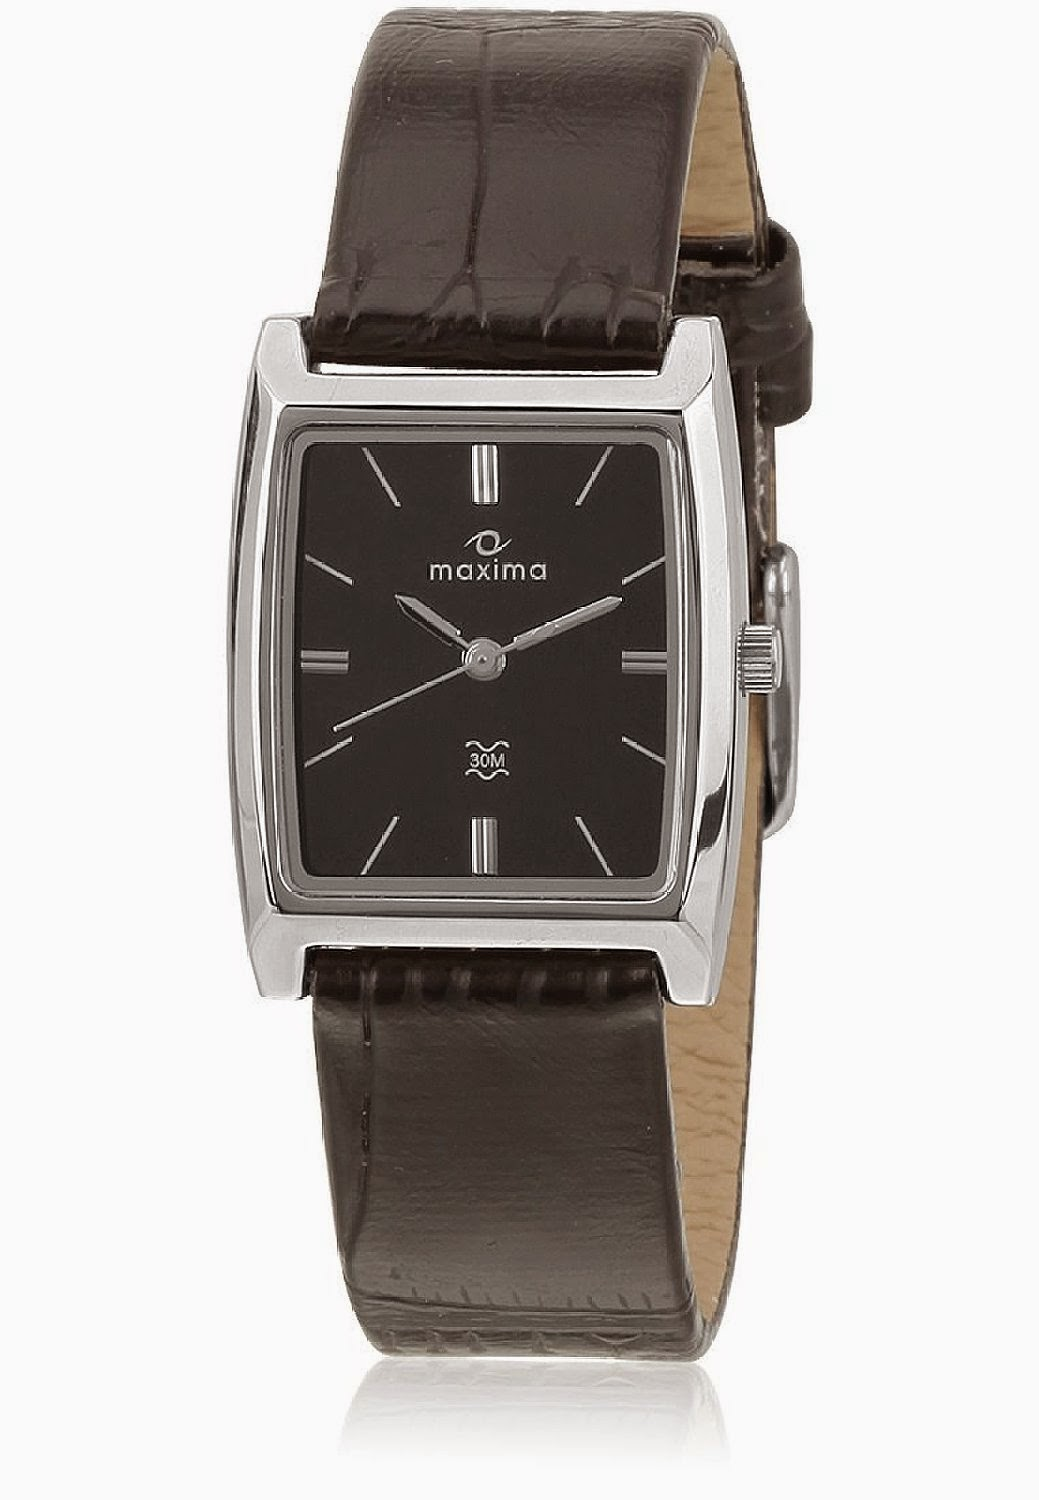 Maxima Attivo Analog Black Dial Men's Watch worth Rs 895 for Rs 397